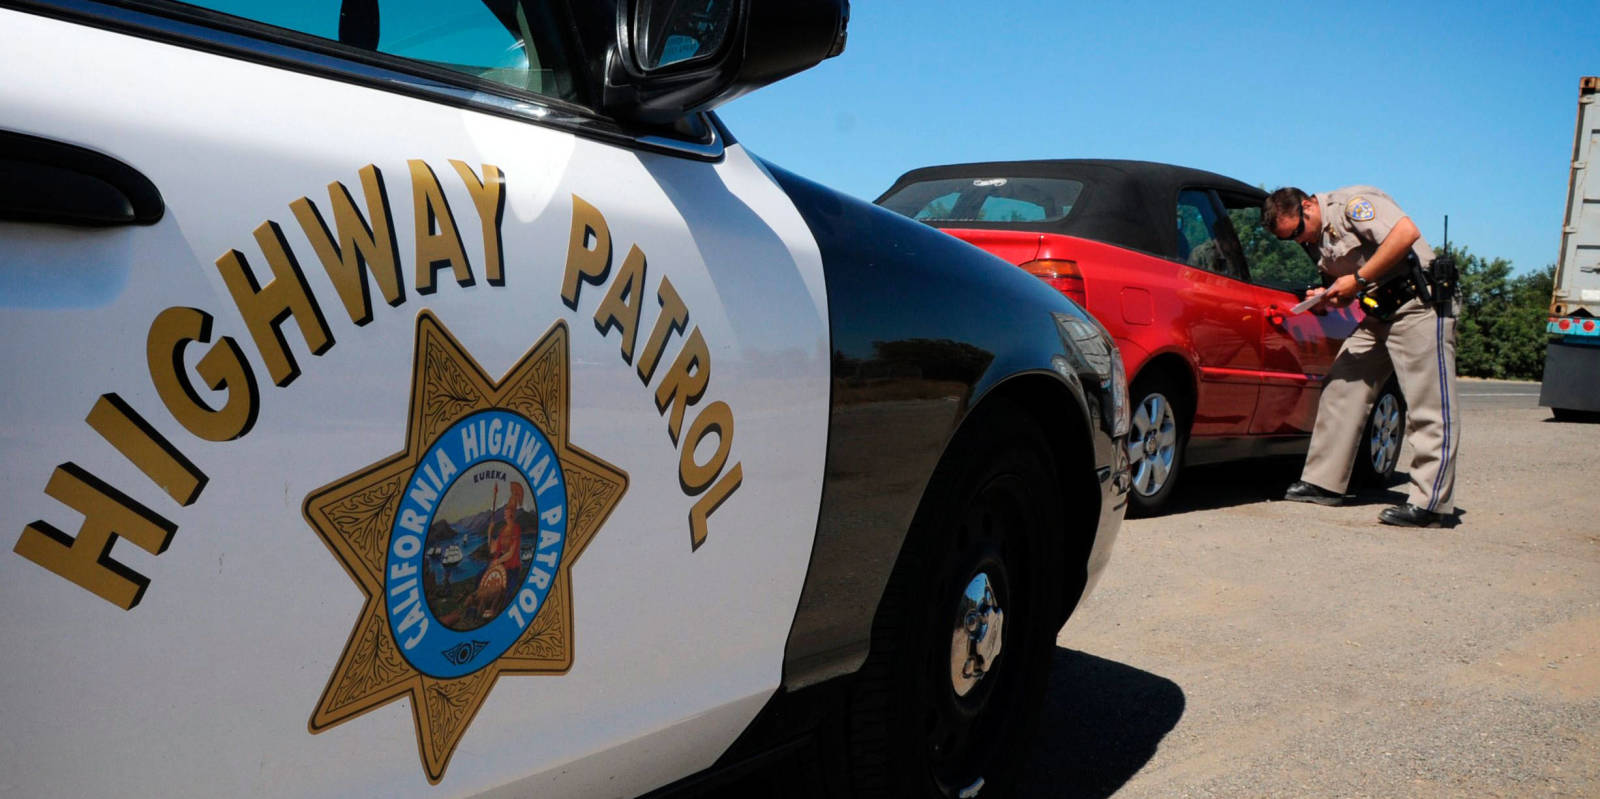 California Highway Patrol Officers Stole Nude Photos From